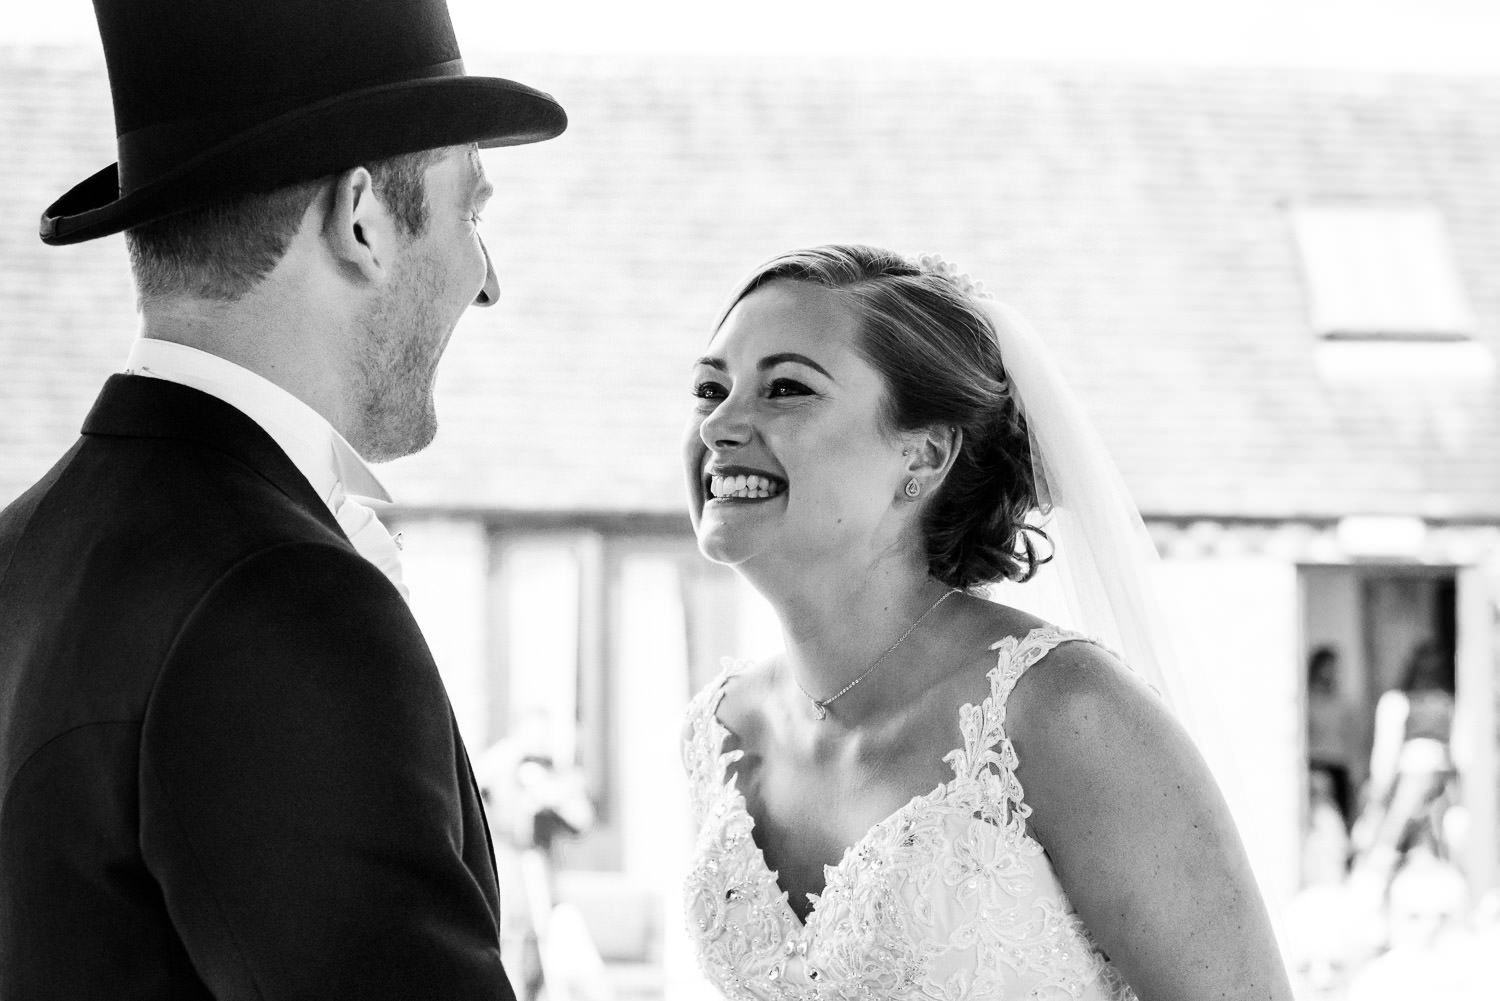 The happy couple during their sunny Wethele Manor ceremony in Coventry.